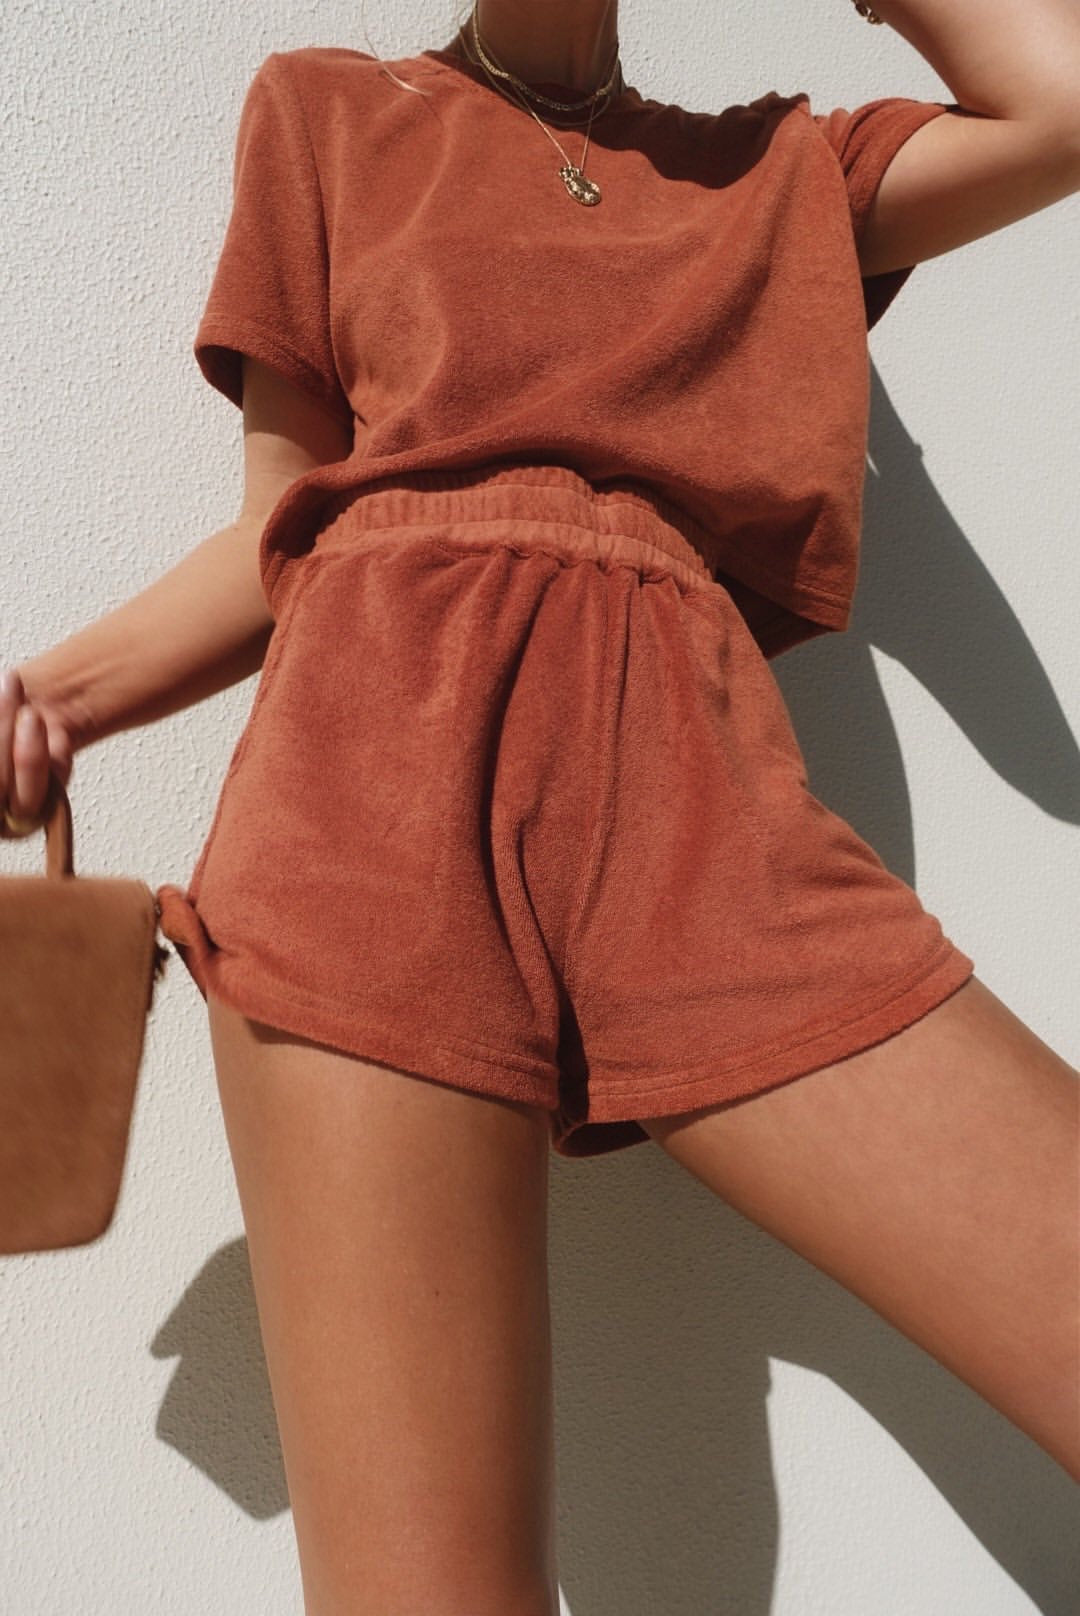 Araminta | S/S Long Shorts Terry Towelling Set - Rust - PREORDER